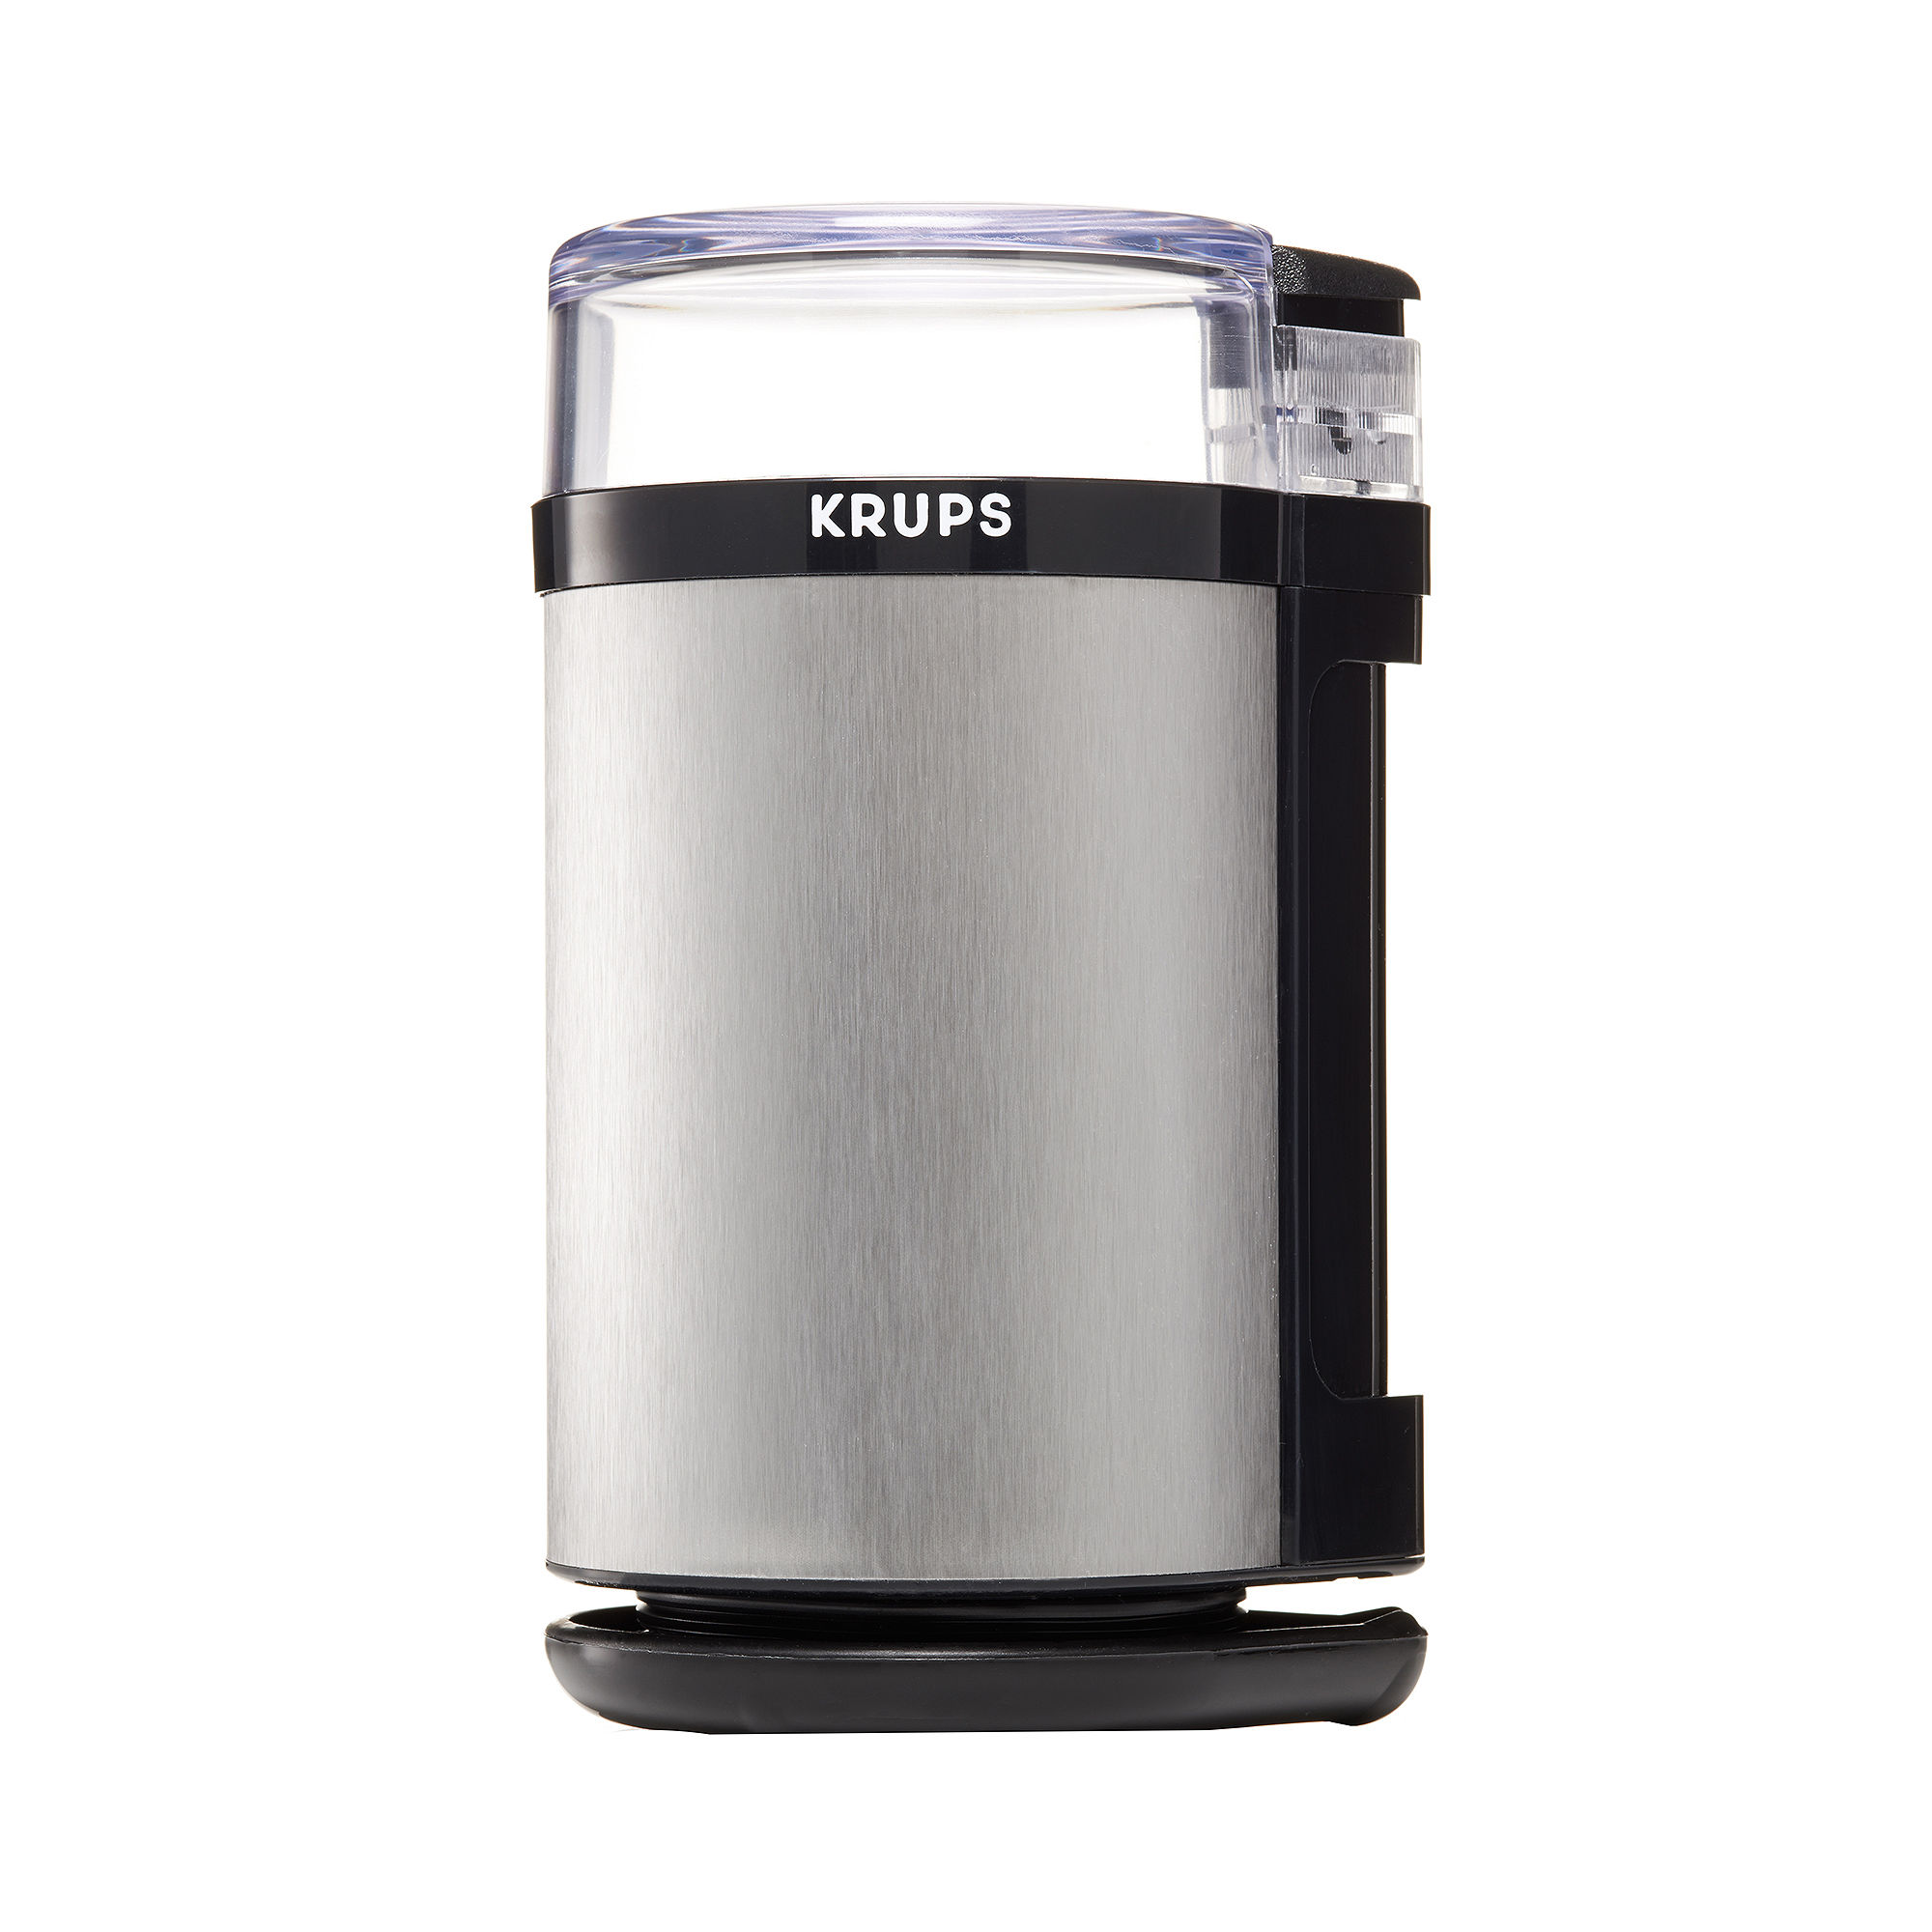 Krups F203 Electric Spice and Coffee Grinder with Stainless Steel Blades - Black